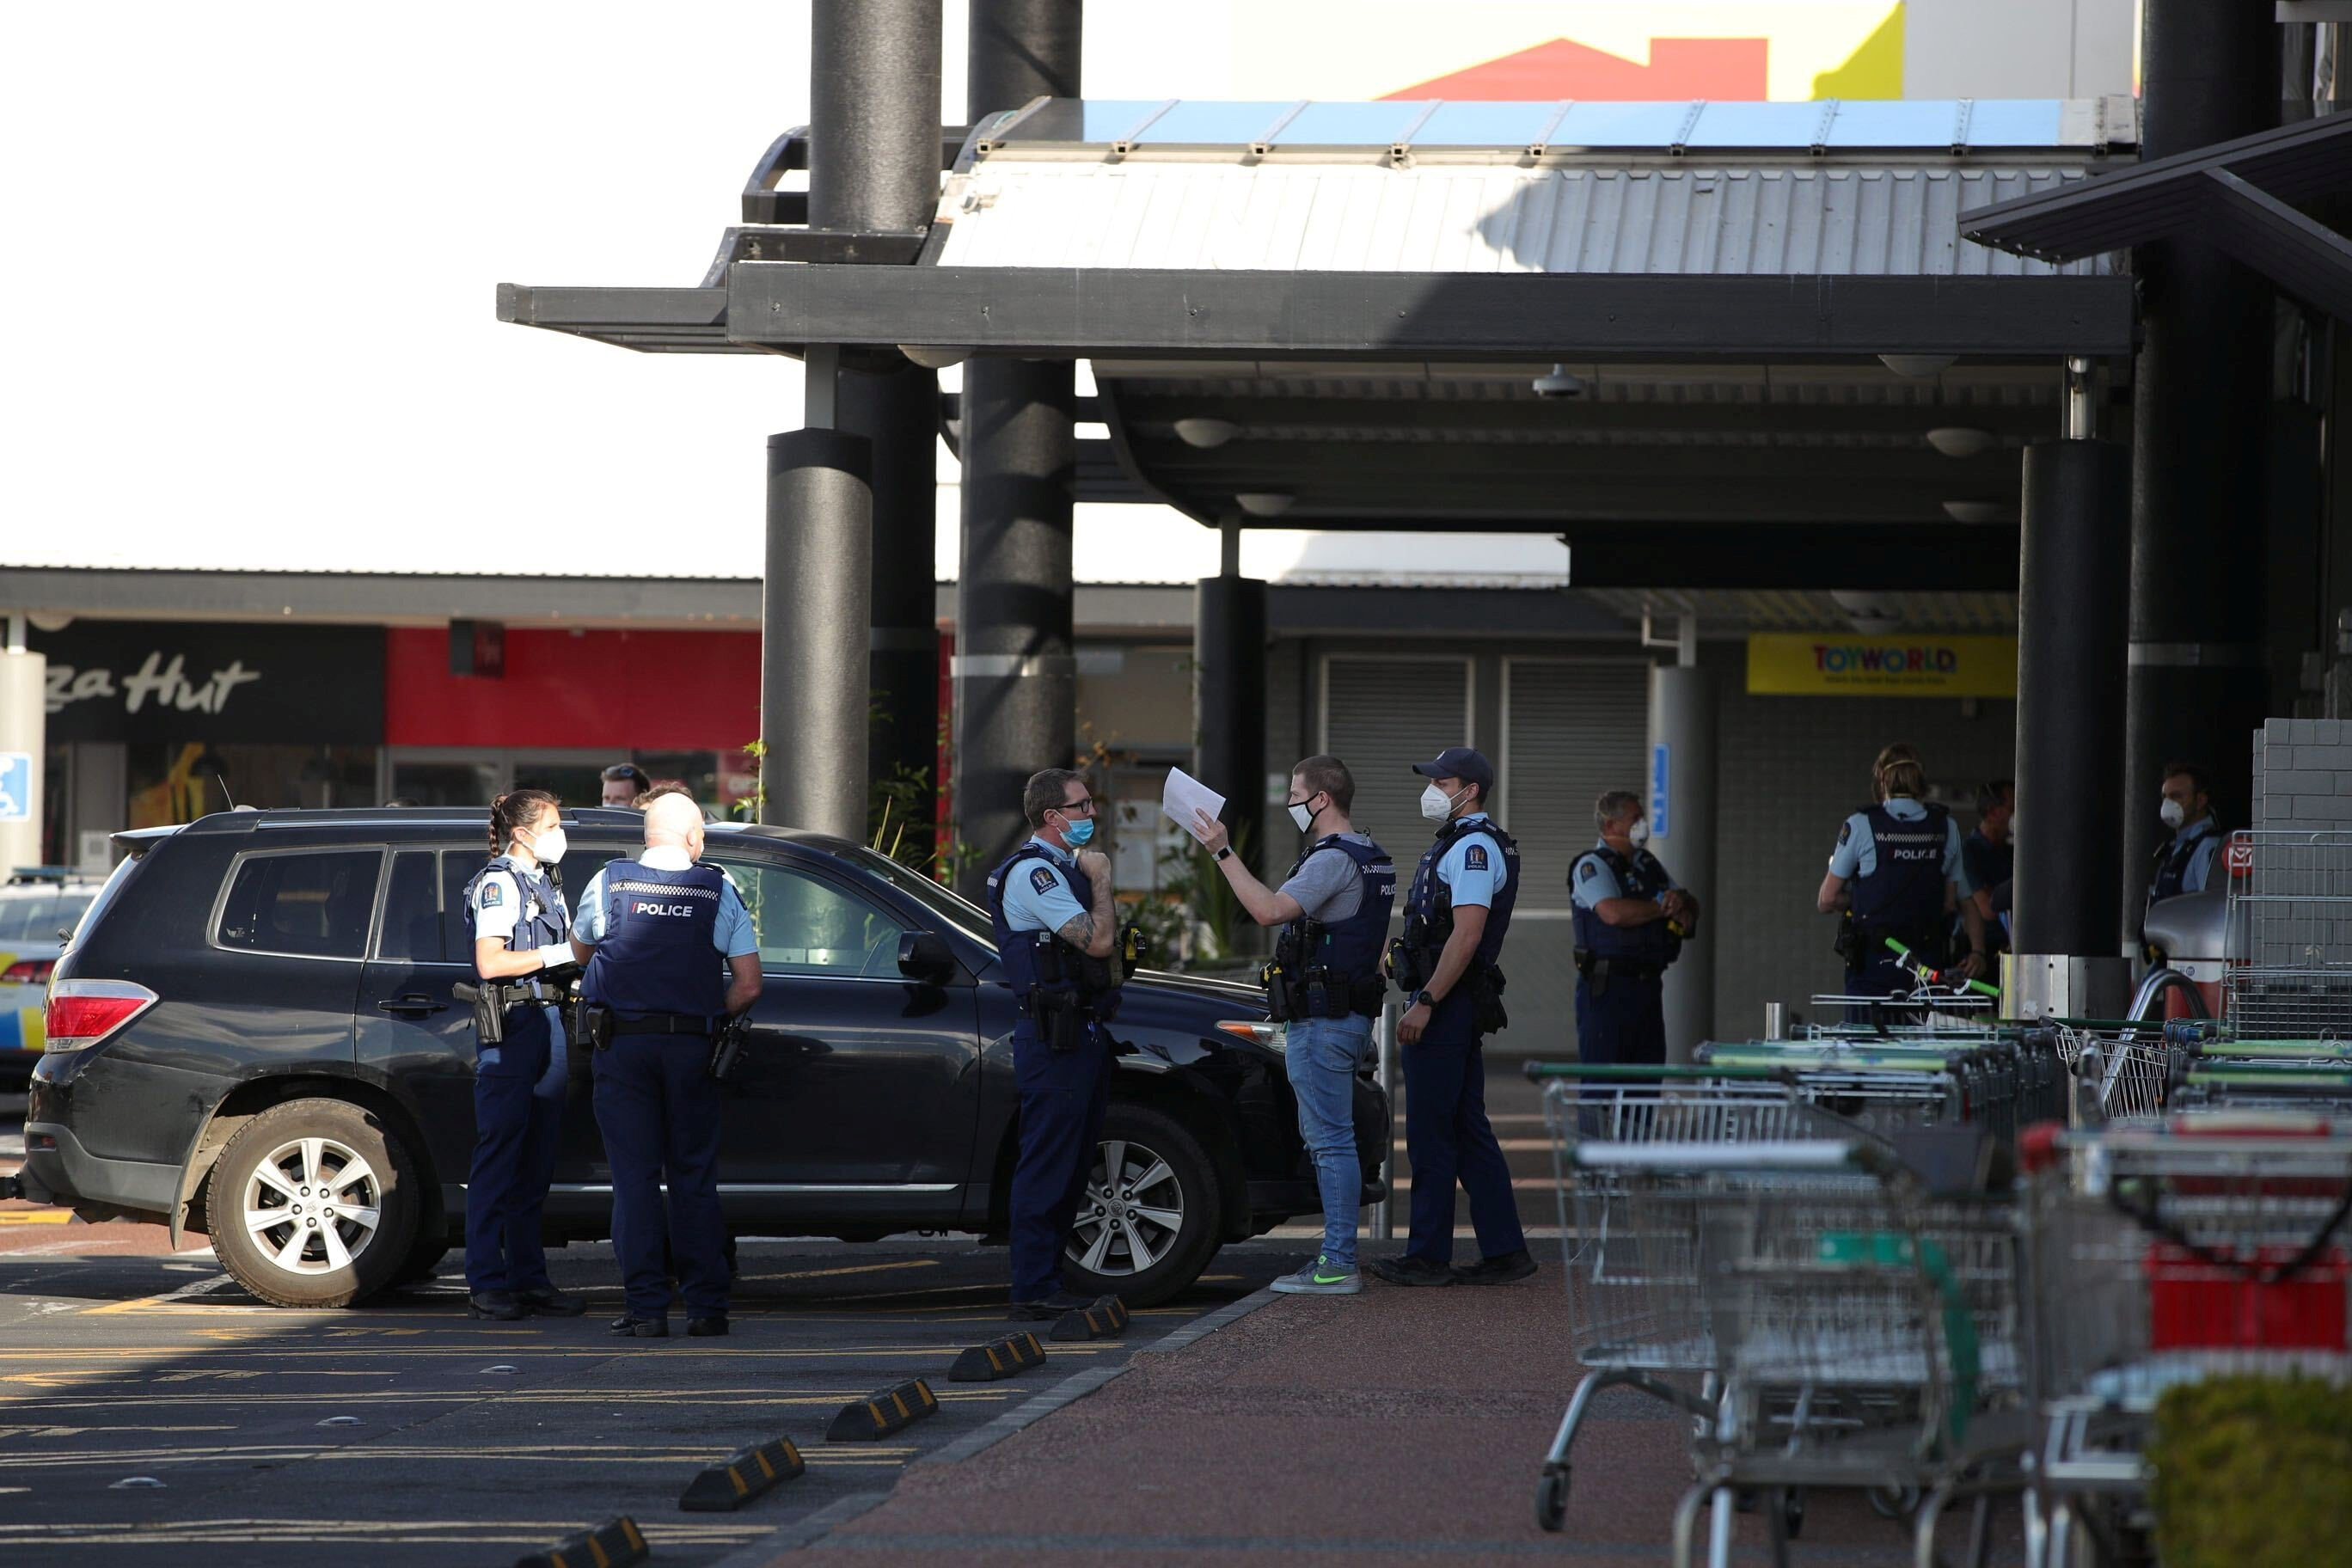 Police respond to the scene of an attack carried out by a man shot dead by police after he injured multiple people at a shopping mall in Auckland, New Zealand, September 3, 2021.  Stuff Limited/Ricky Wilson via REUTERS